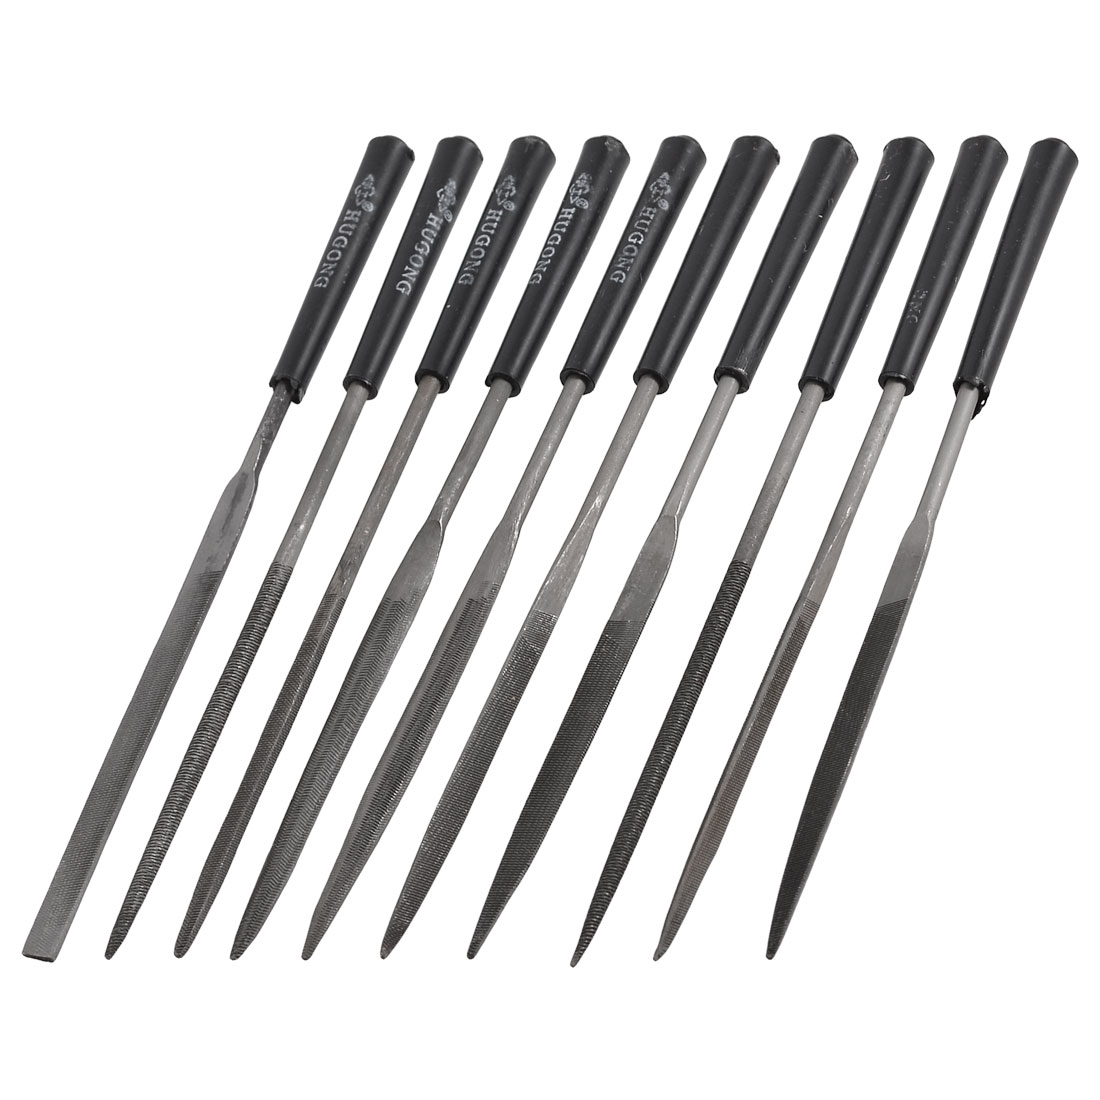 10 x Assorted Shape Shaping Carving Tool File Set 140mm for Metal Stone